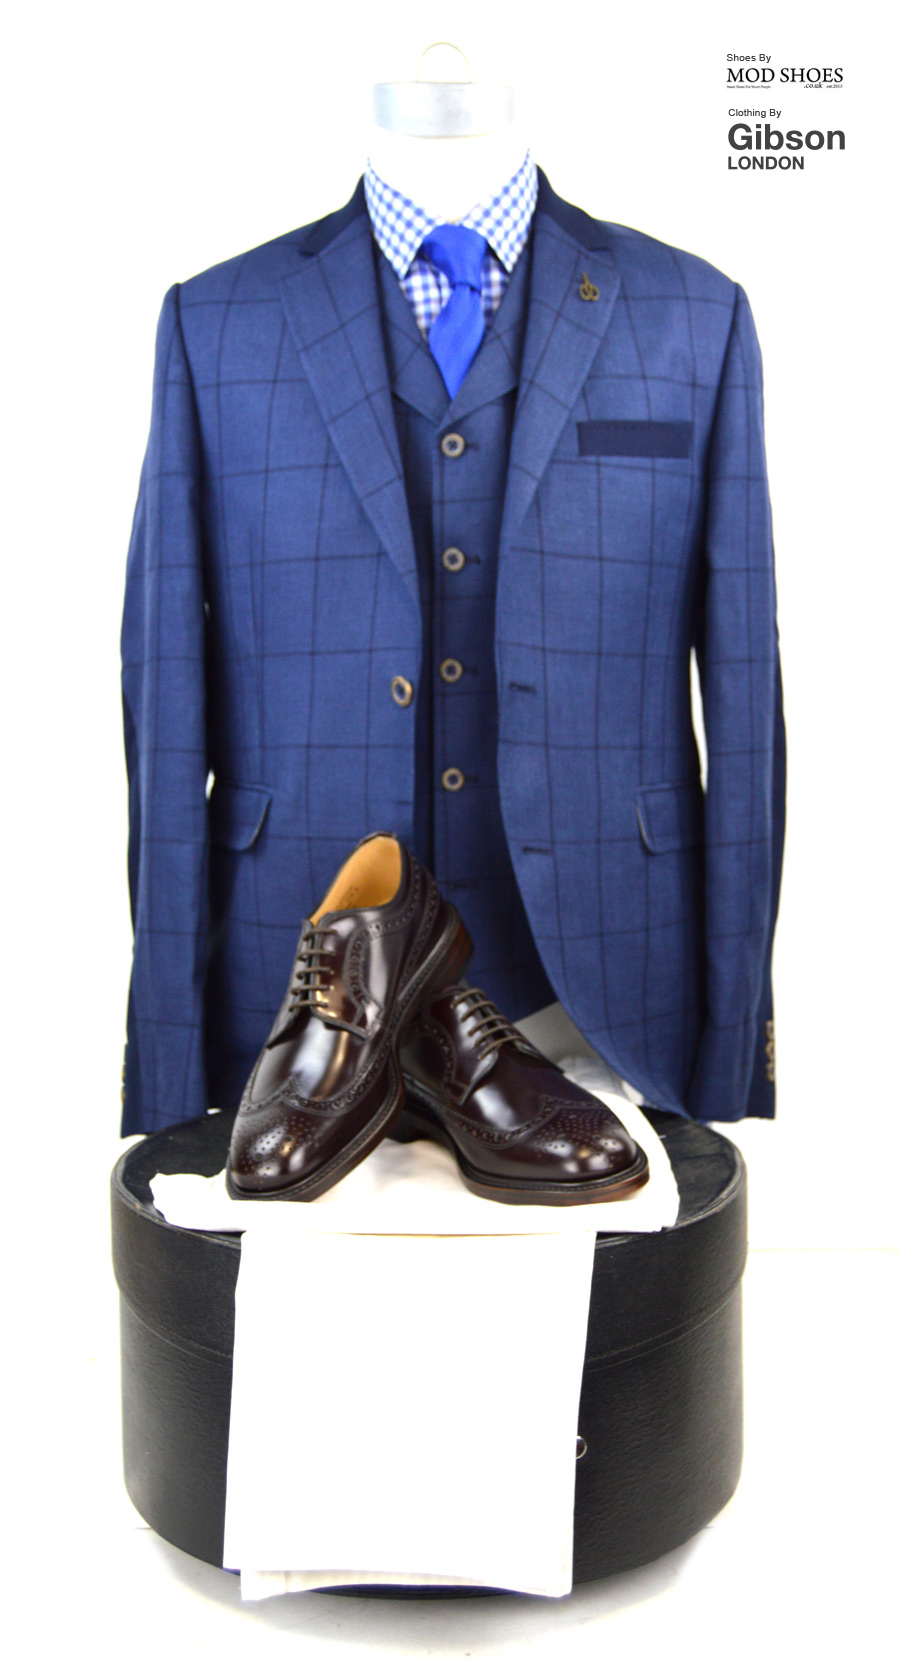 modshoes-loake-royals-with-gibson-blue-suit